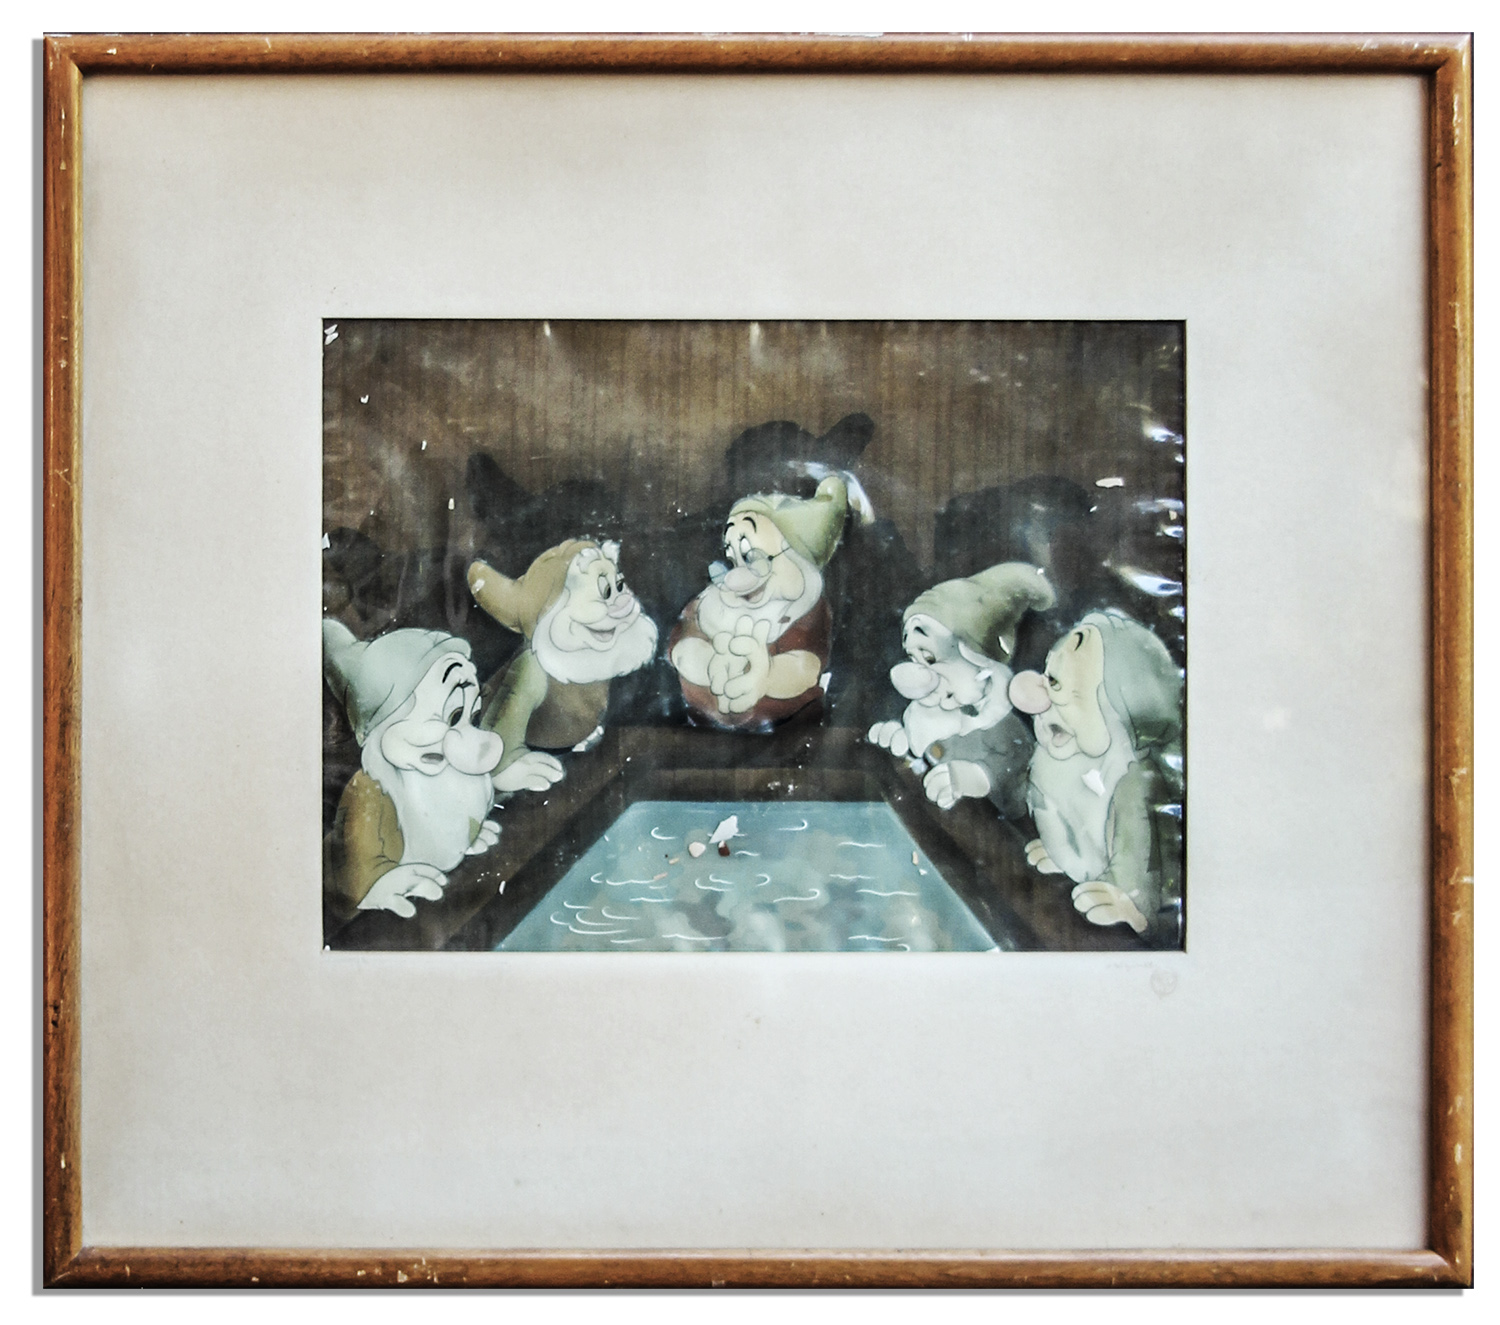 Snow White and the Seven Dwarfs cel